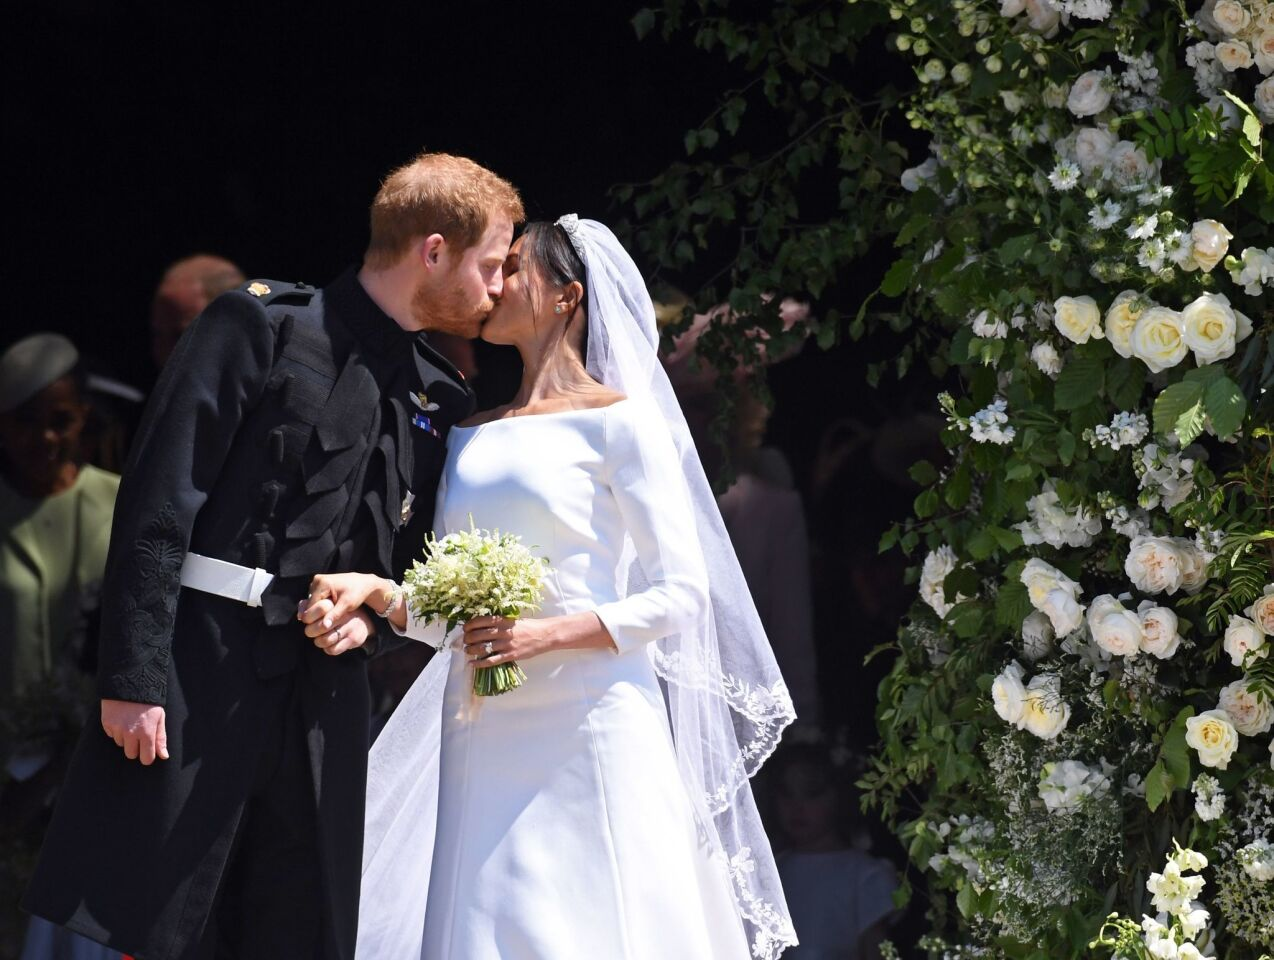 Meghan Markle and and Prince Harry kiss as they exit St. George's Chapel at Windsor Castle after their royal wedding ceremony on May 19.